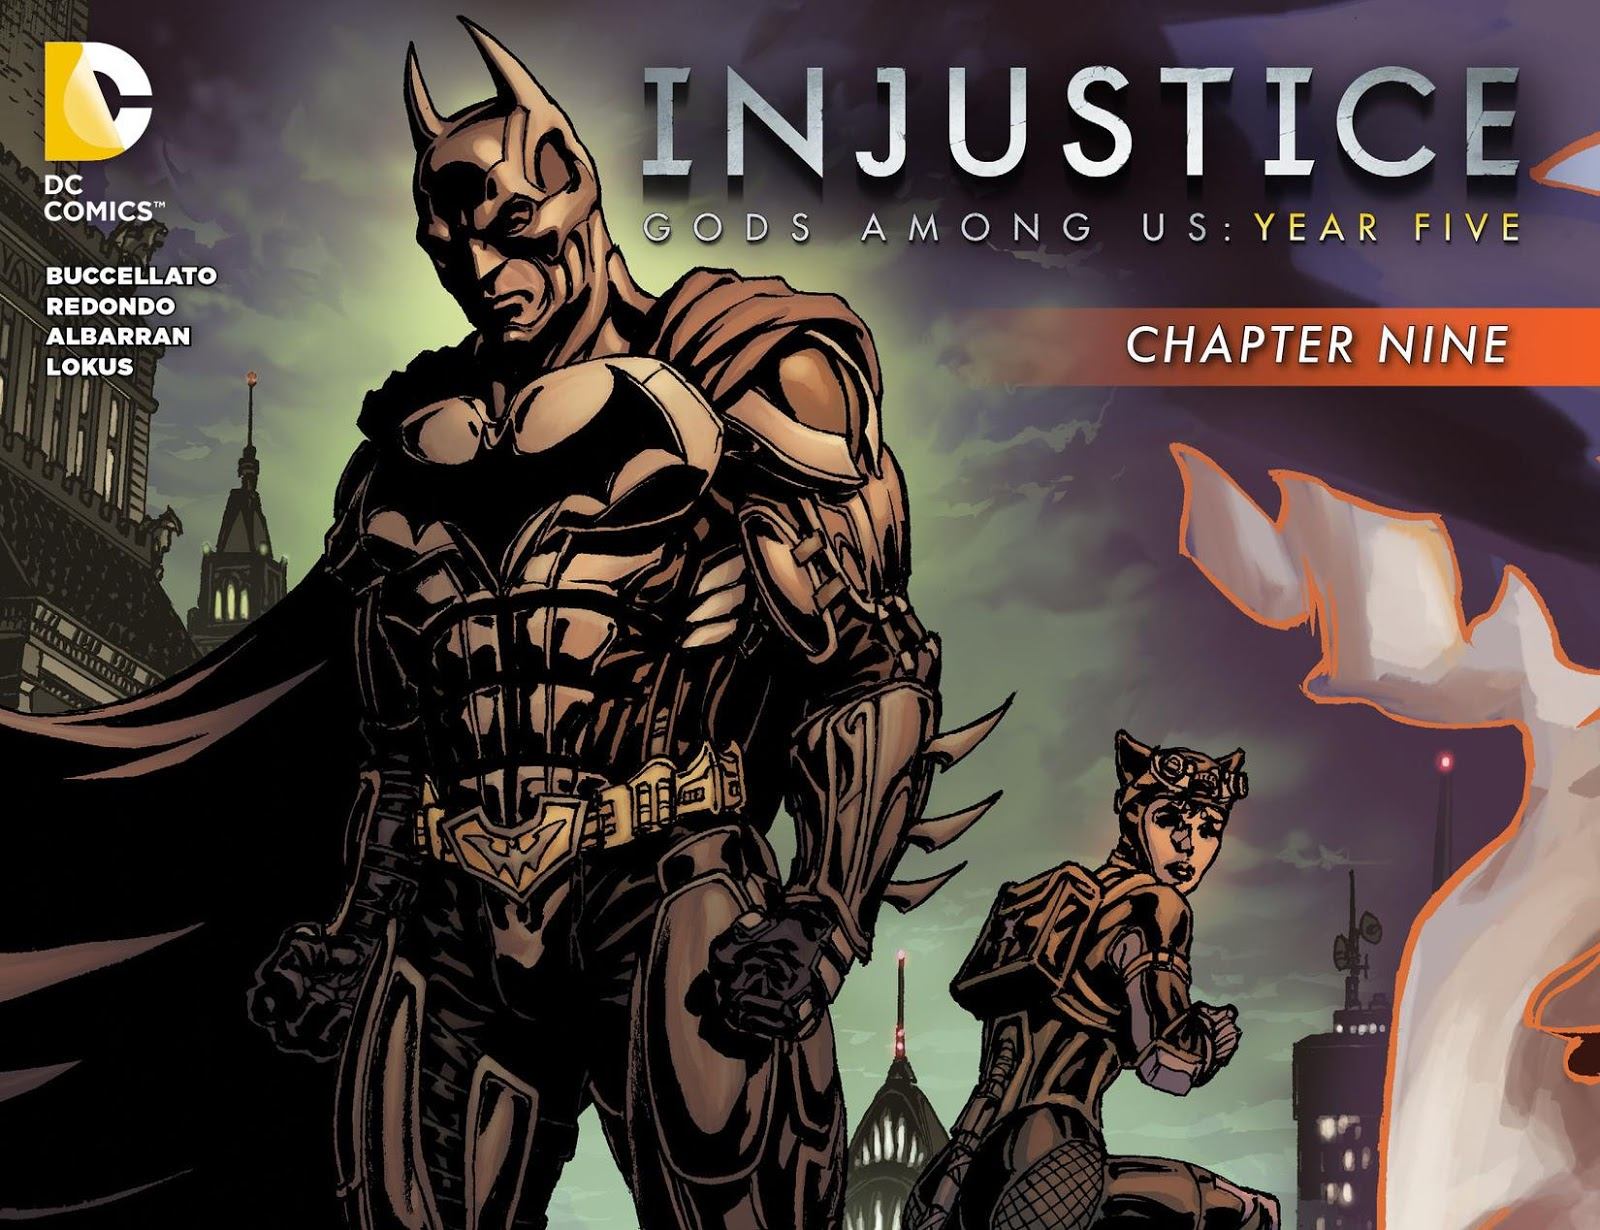 Weird Science DC Comics Injustice Gods Among Us Year Five - Injustice god among us buttom map